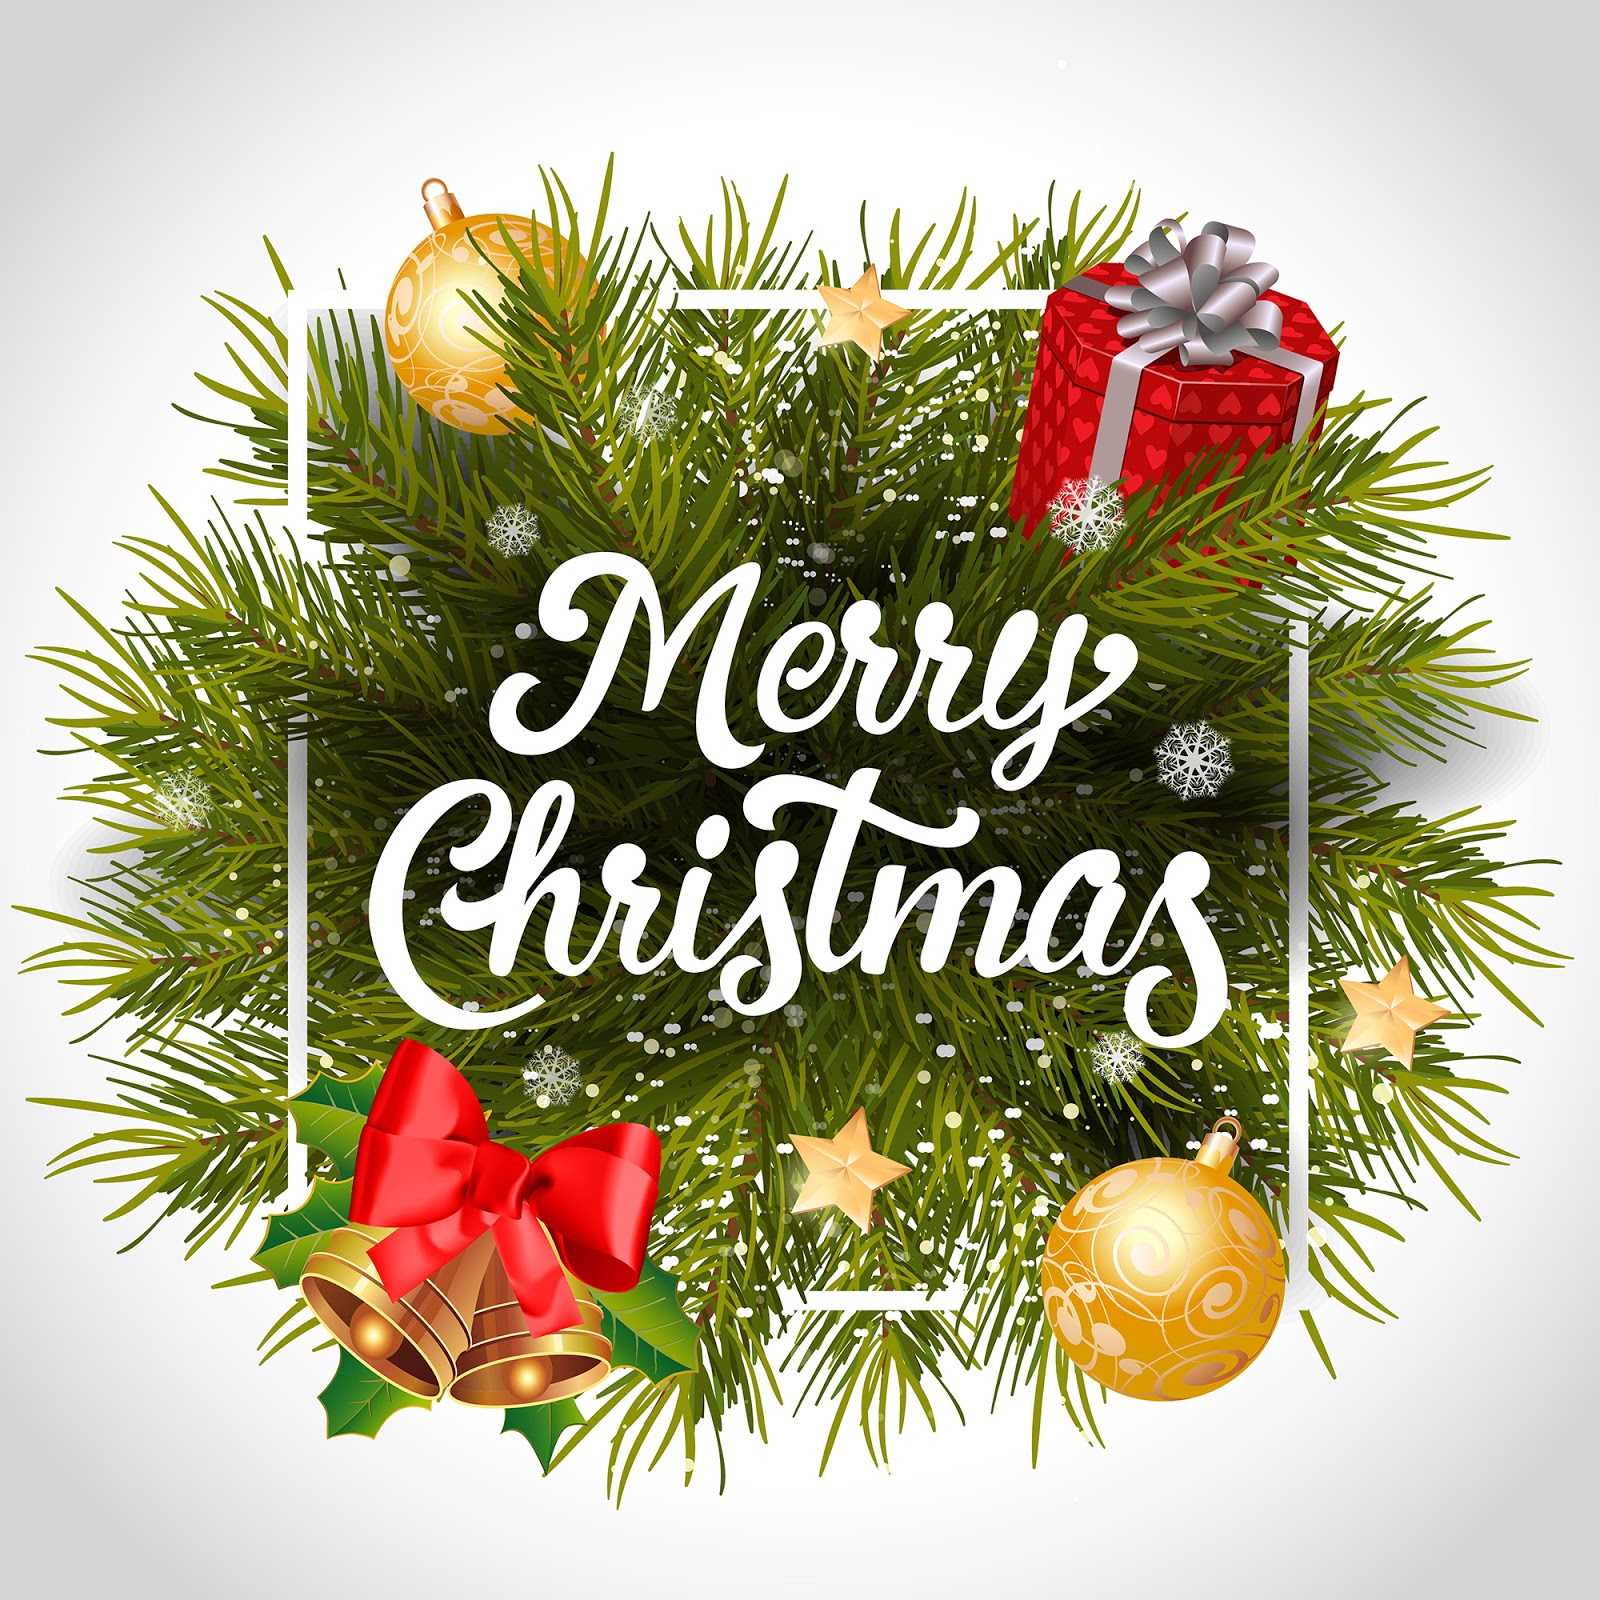 Merry Christmas Lettering Free Download Vector CDR, AI, EPS and PNG Formats